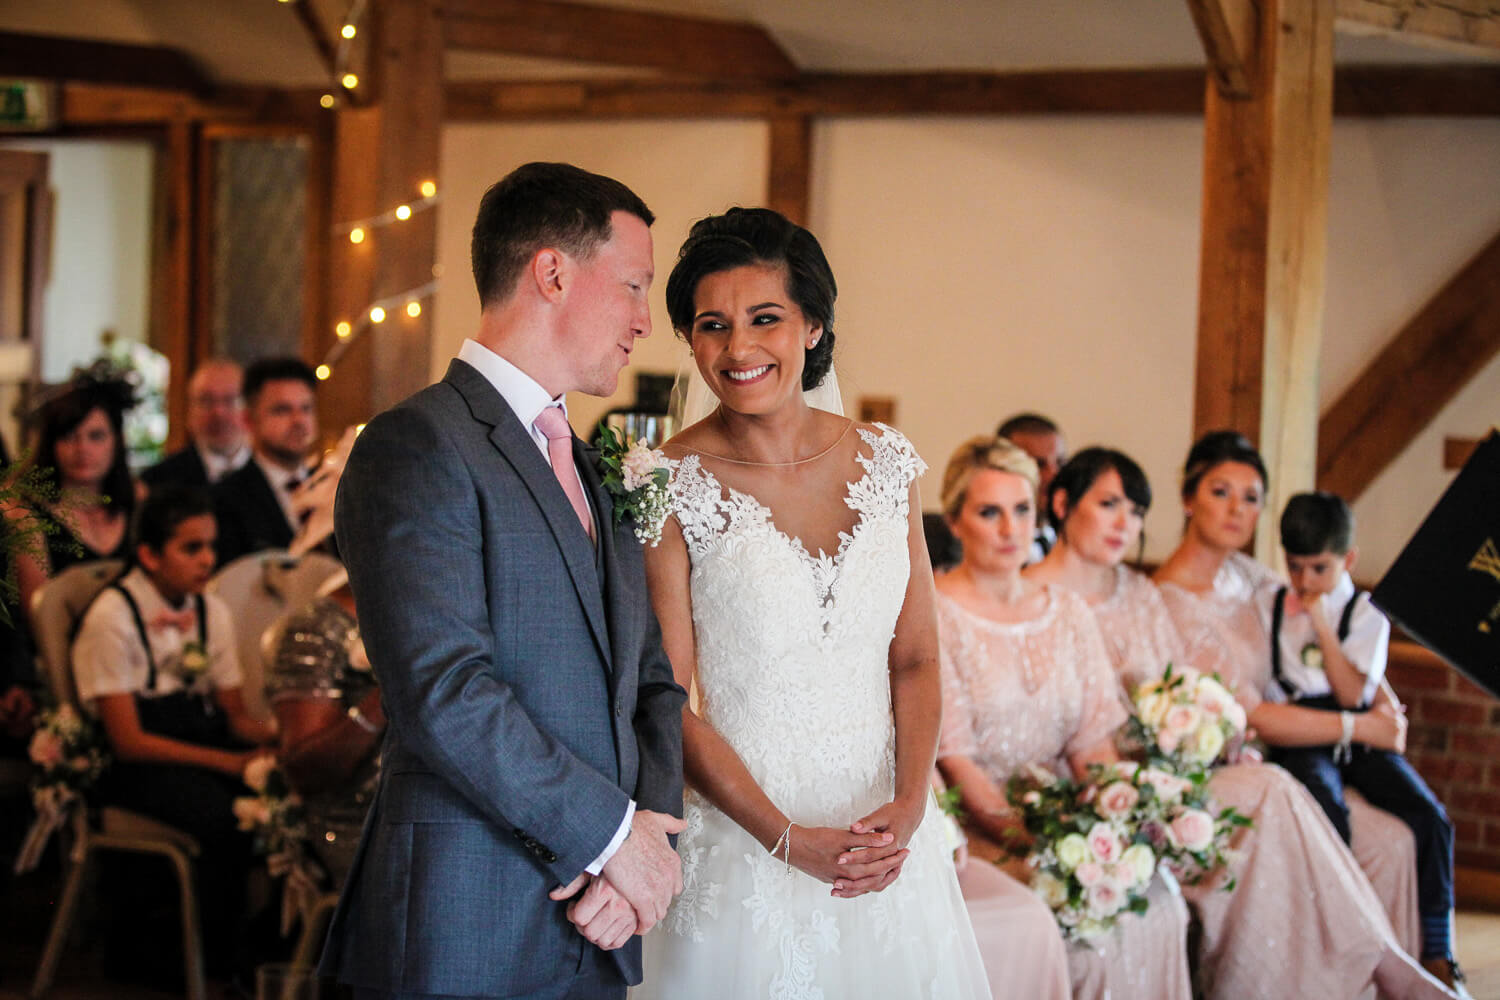 Bride and groom together during ceremony. Do I need a second wedding photographer